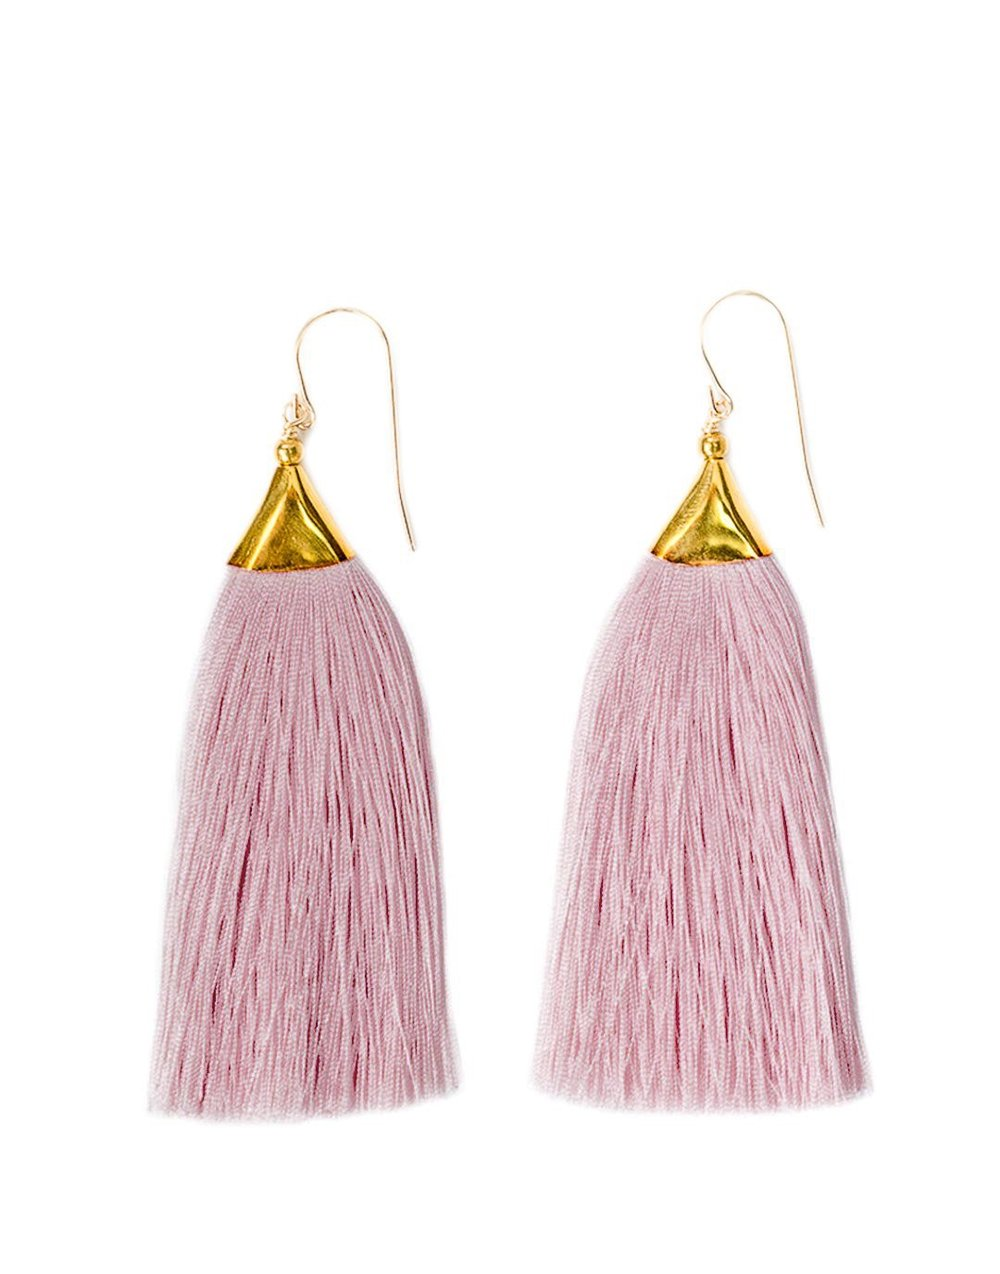 THE LITTLE MARKET   Tassel Earrings Mauve